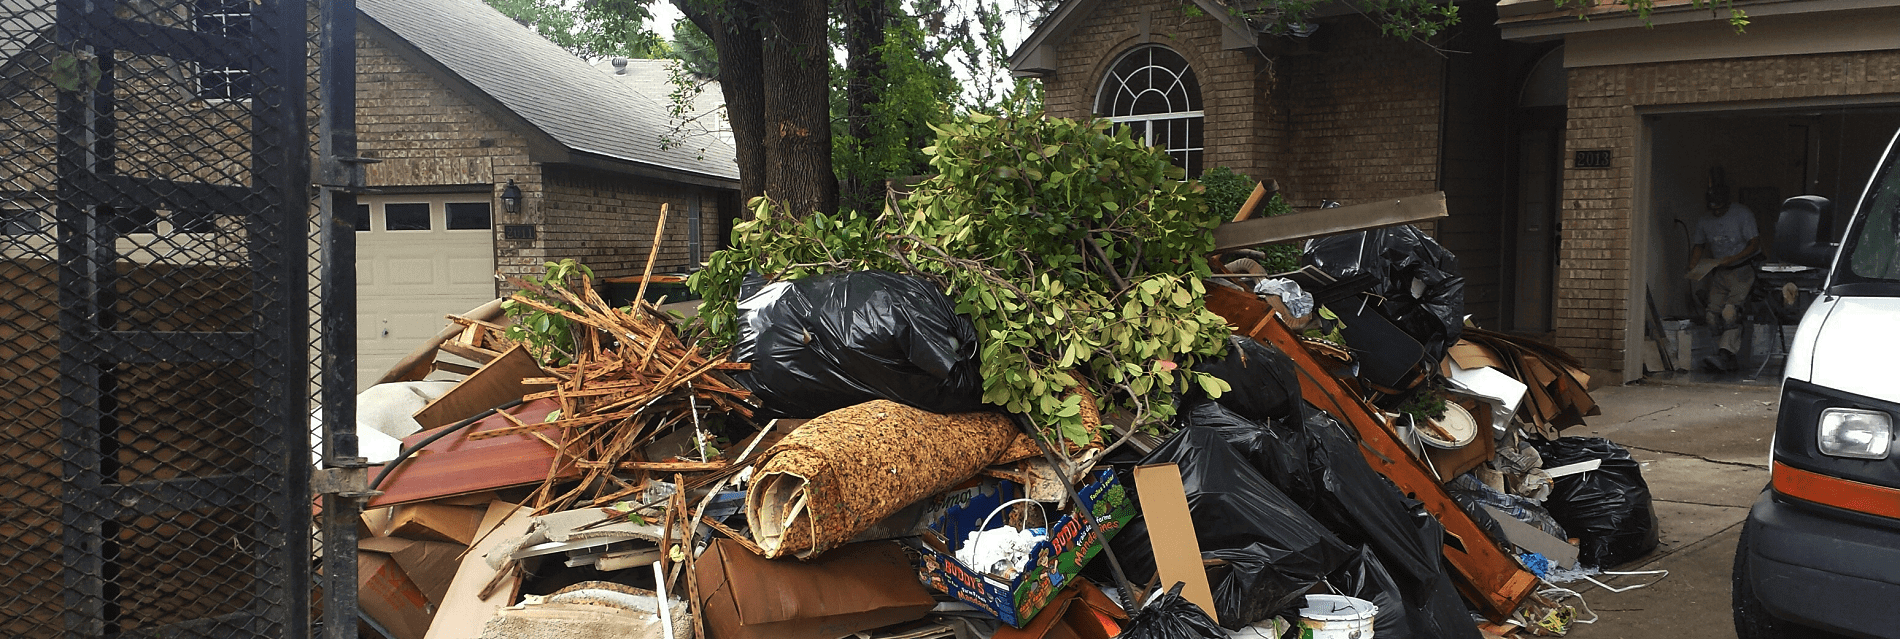 Bulk Trash Pickup Dallas